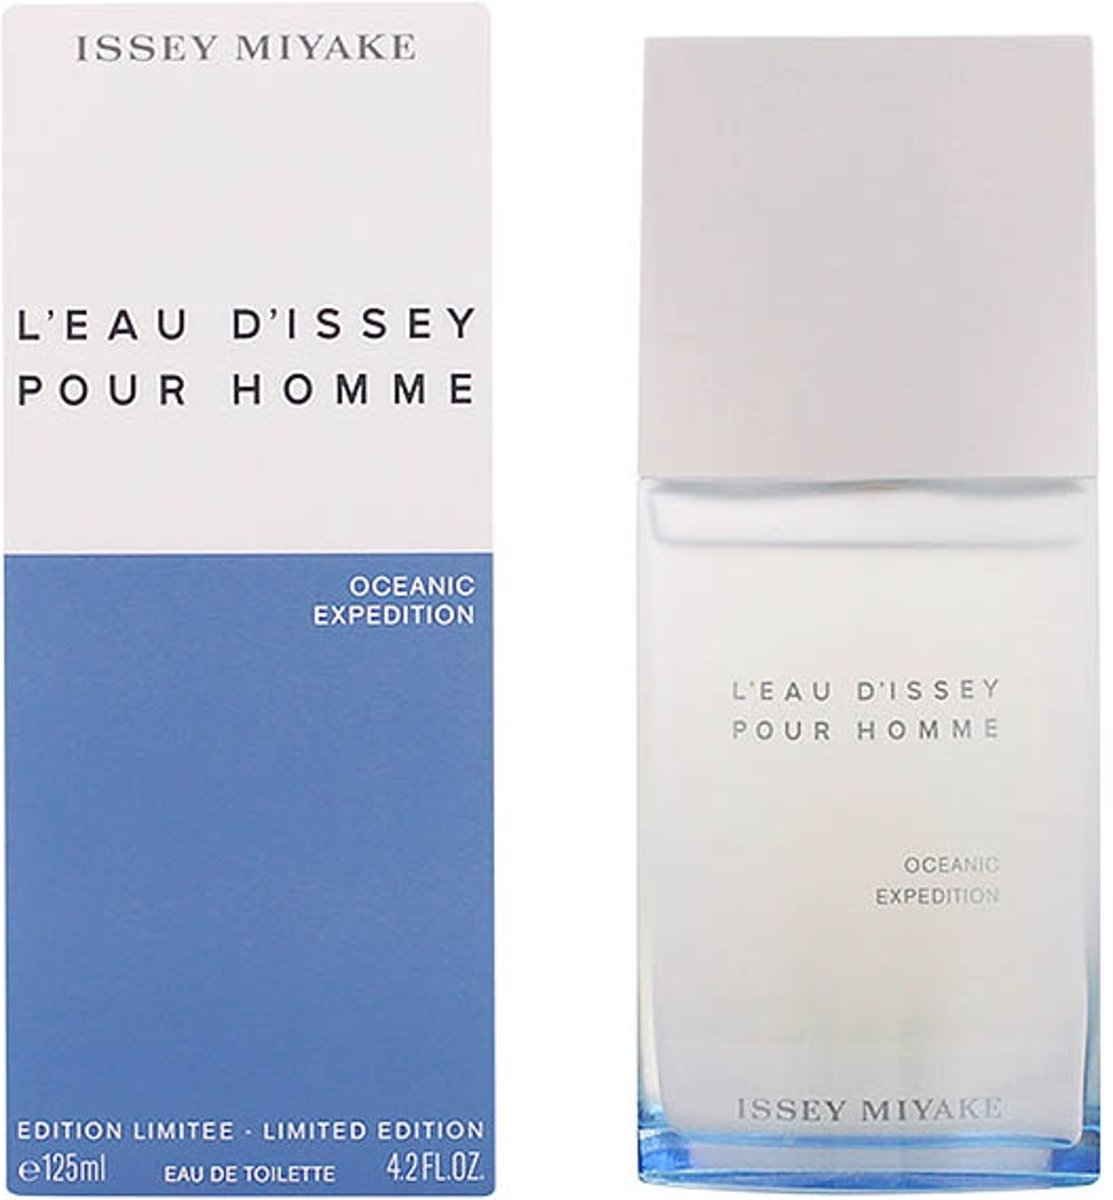 Issey Miyake LEau DIssey Pour Homme Oceanic Expedition Edt 125 ml